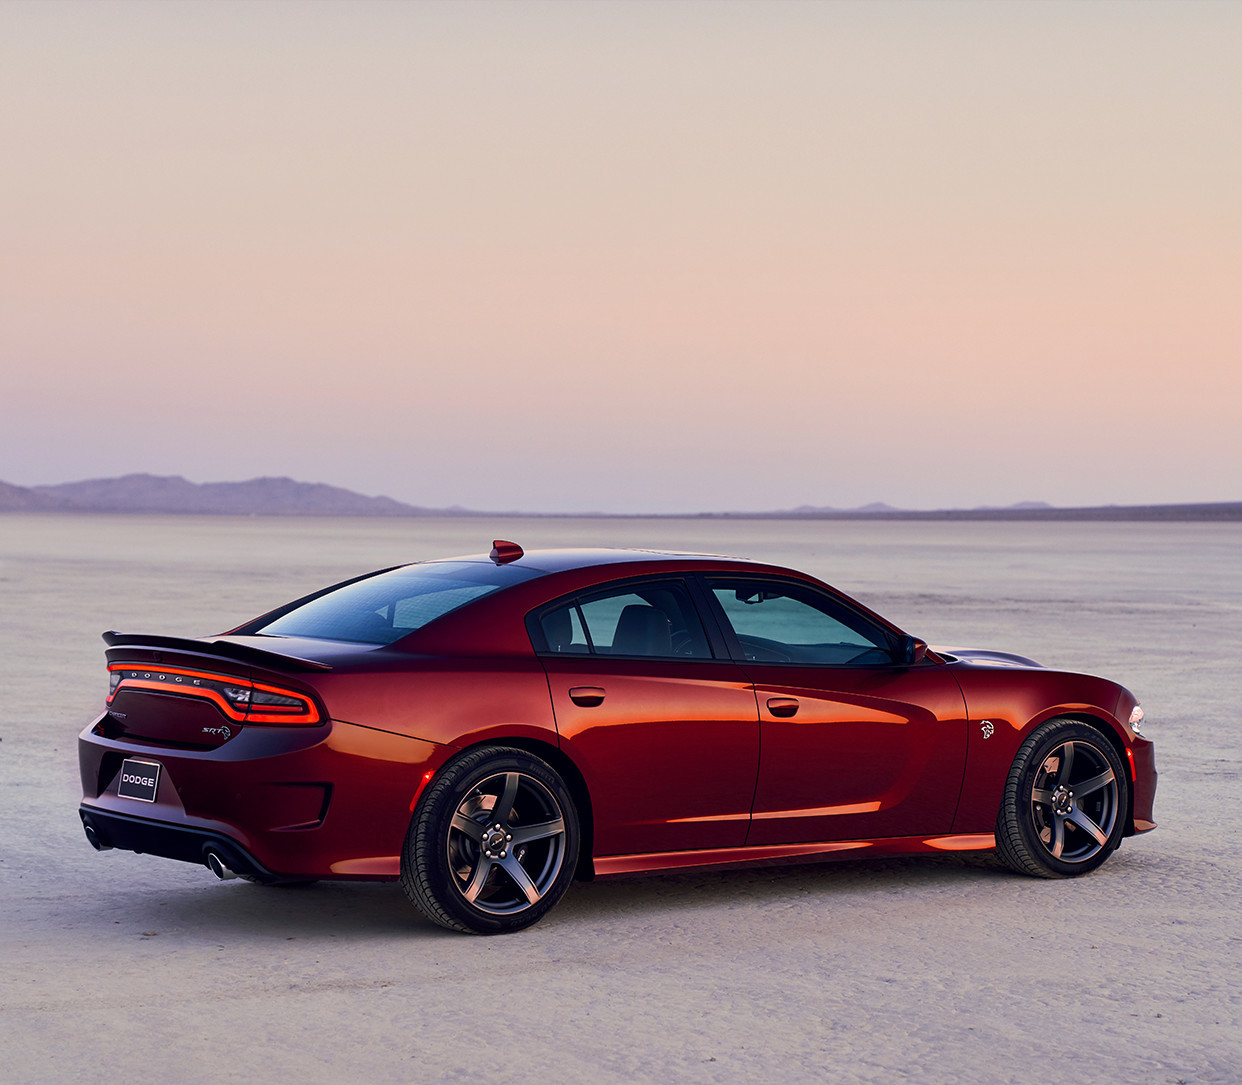 2019 Dodge Charger side view, shown in red